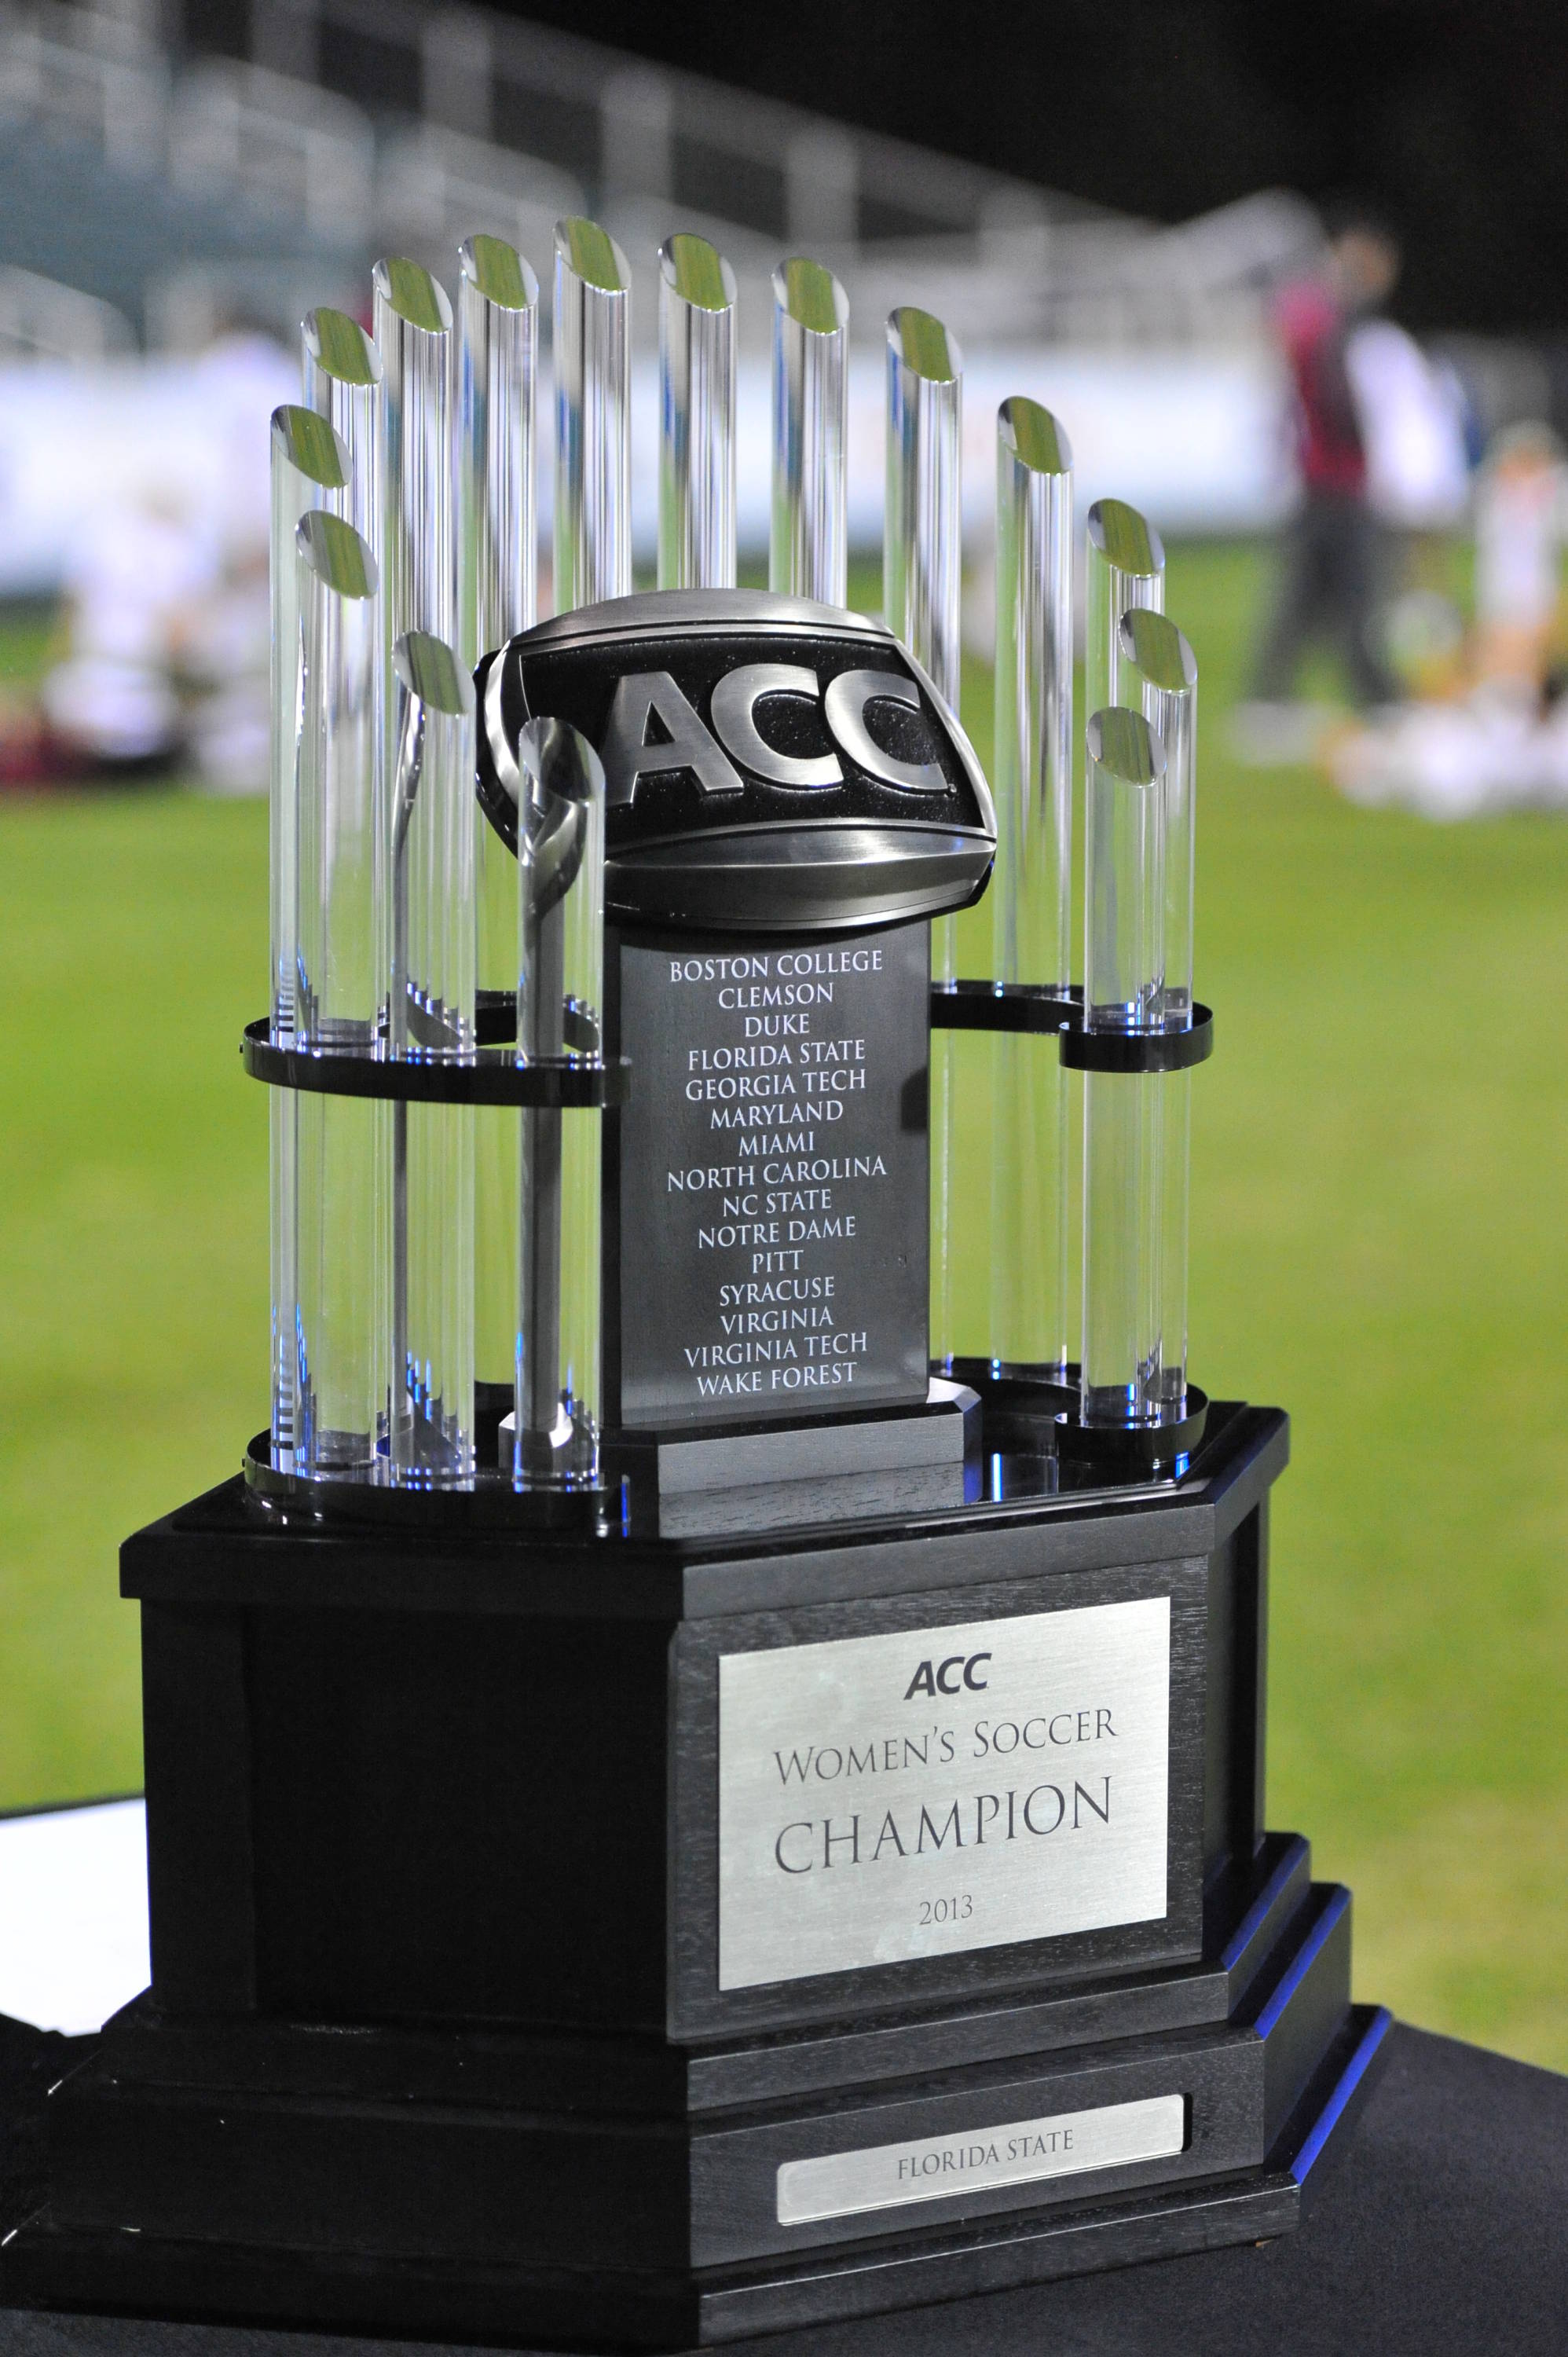 2013 ACC Championship Trophy belongs to the Florida State Seminoles!